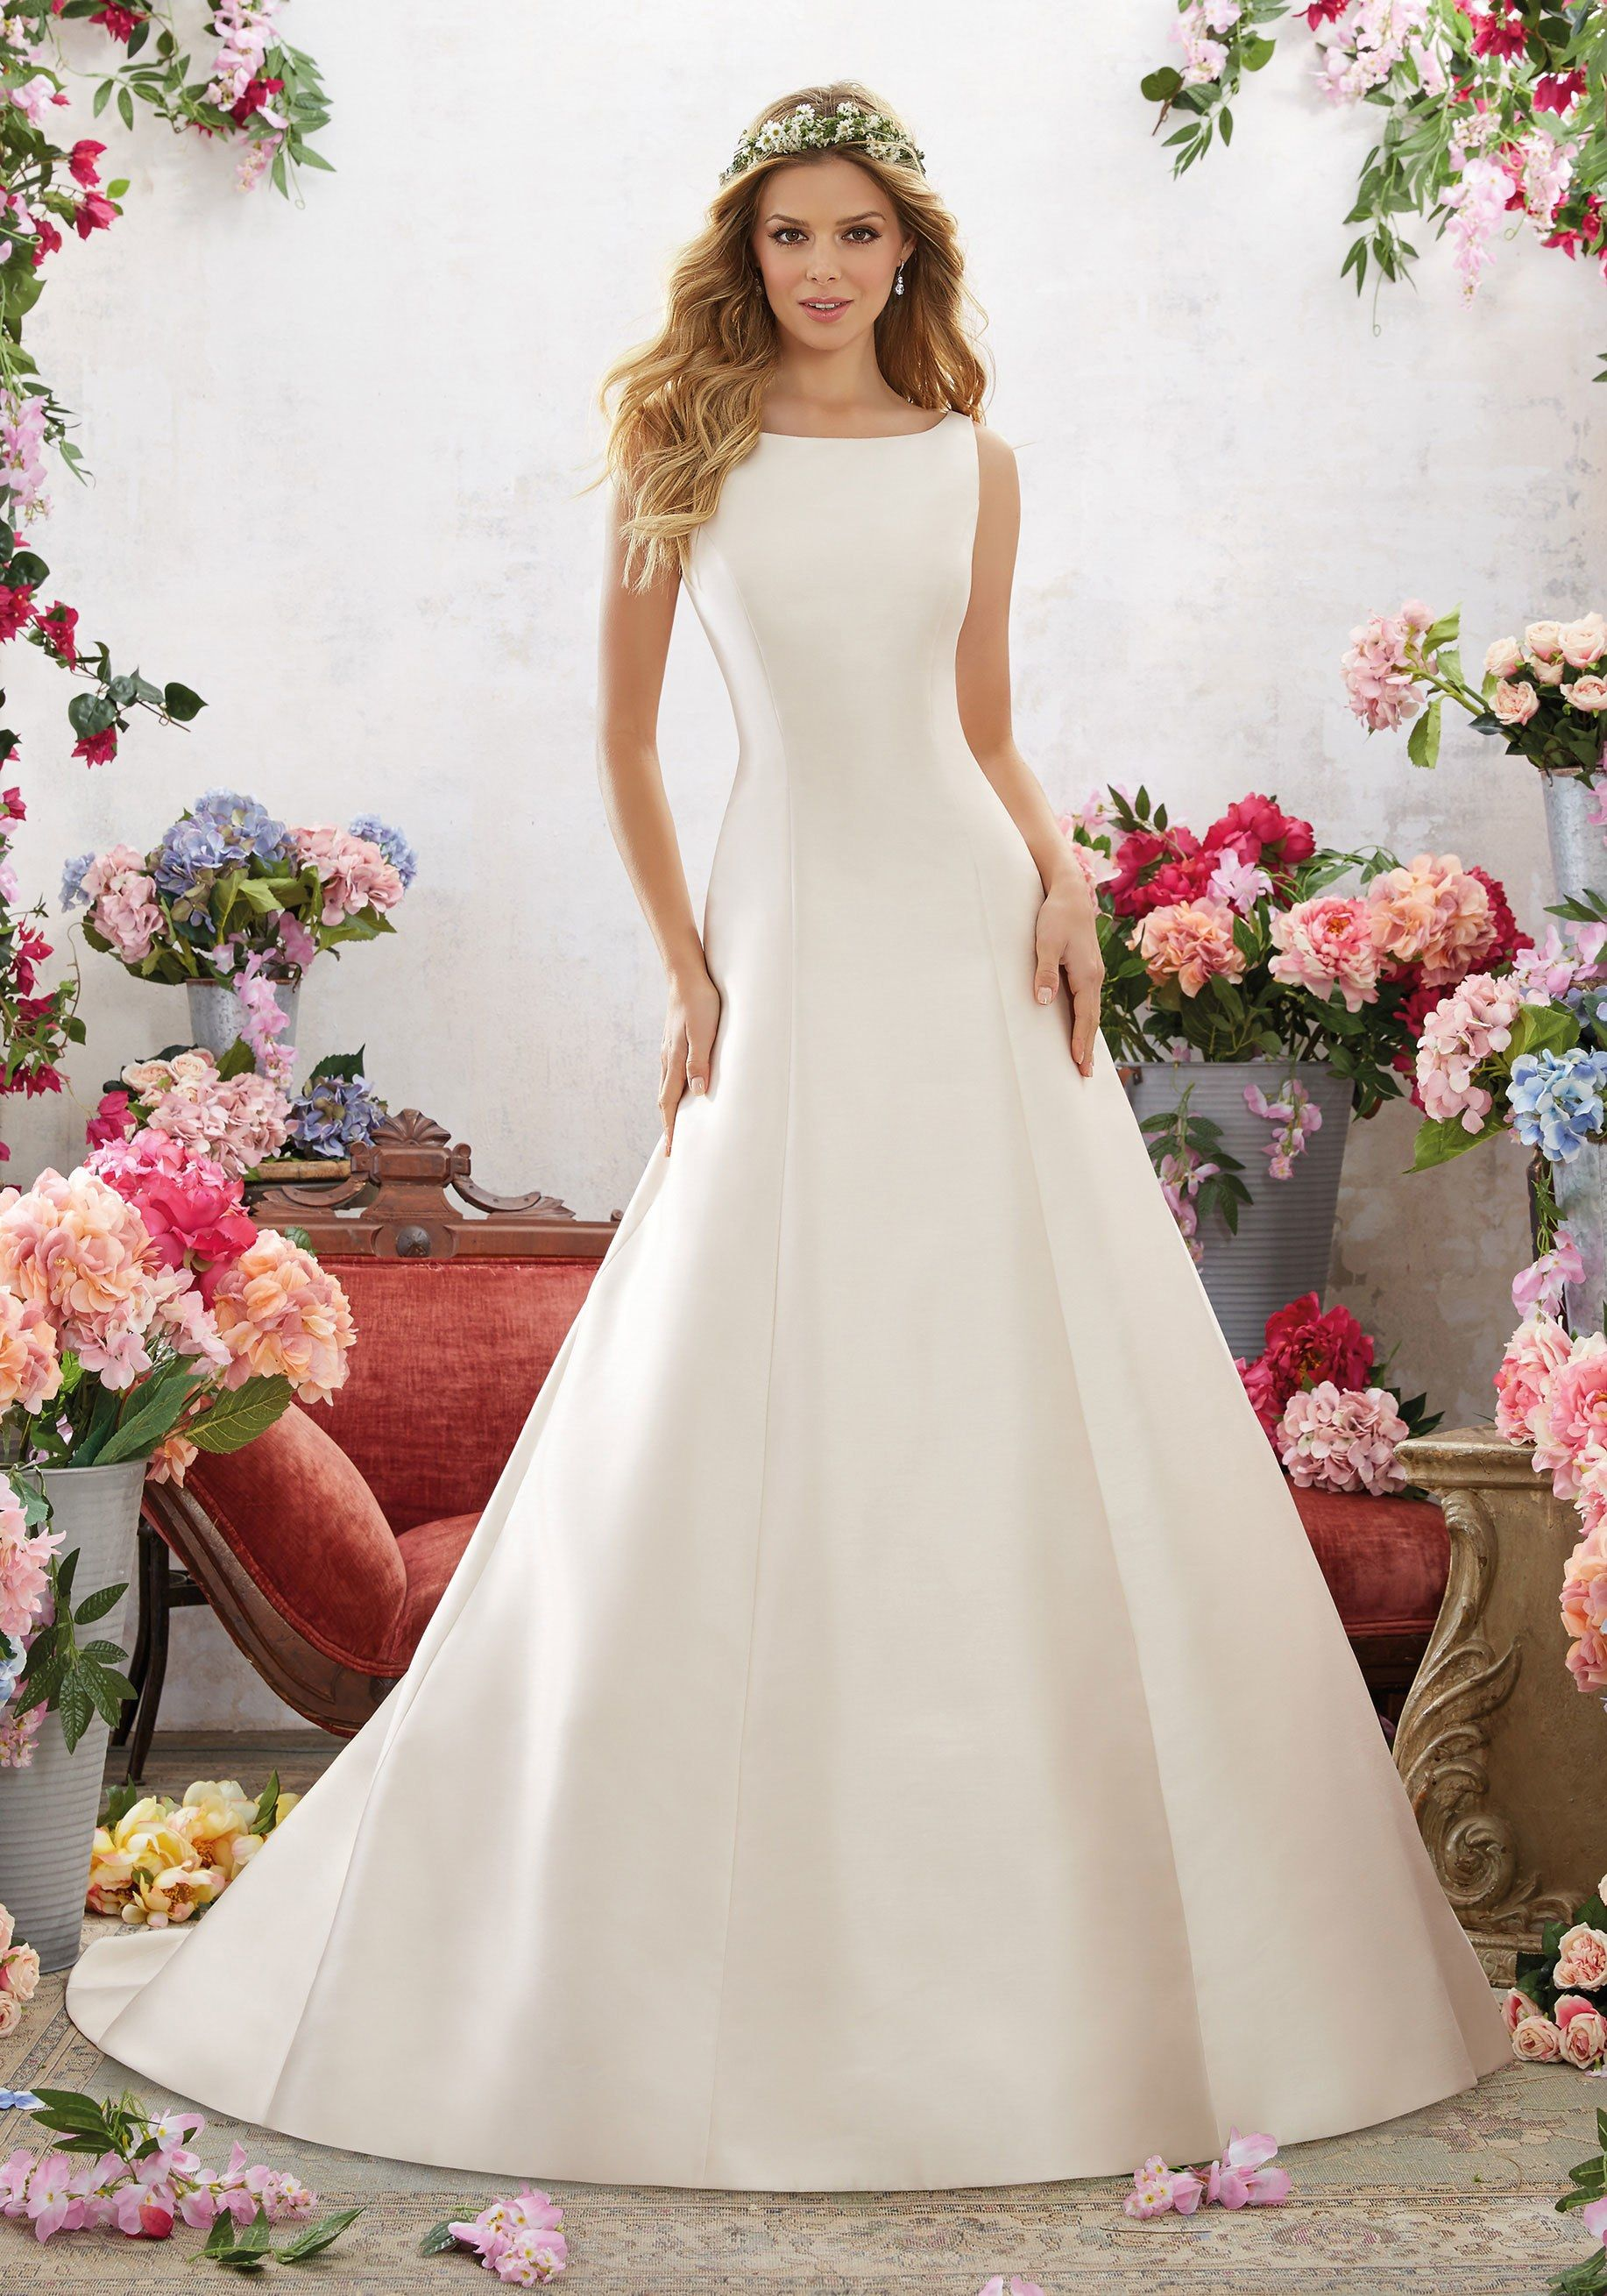 $1000 wedding dress  Wedding Dresses Under   Affordable Wedding Dresses